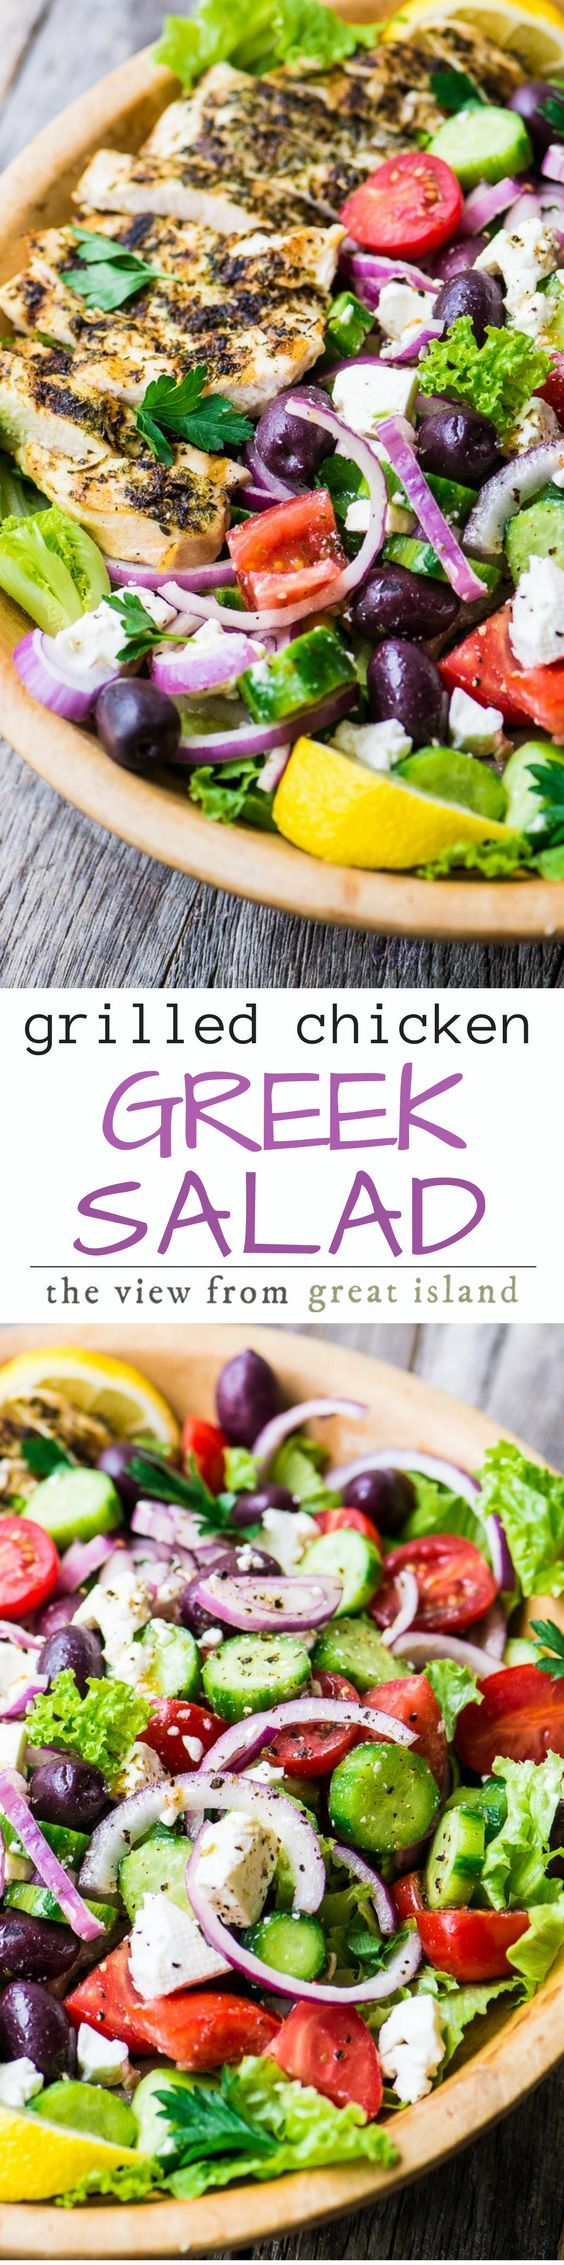 Grilled Greek Chicken Salad ~ if you love a great main course salad in the warmer months like I do then this vibrant Mediterranean bowl will win you over for sure. I've married a classic Greek salad with tender grilled chicken breasts for a light yet totally satisfying meal. | main course salad | chicken | Greek food | mediterranean diet | whole 30 | Paleo | healthy |